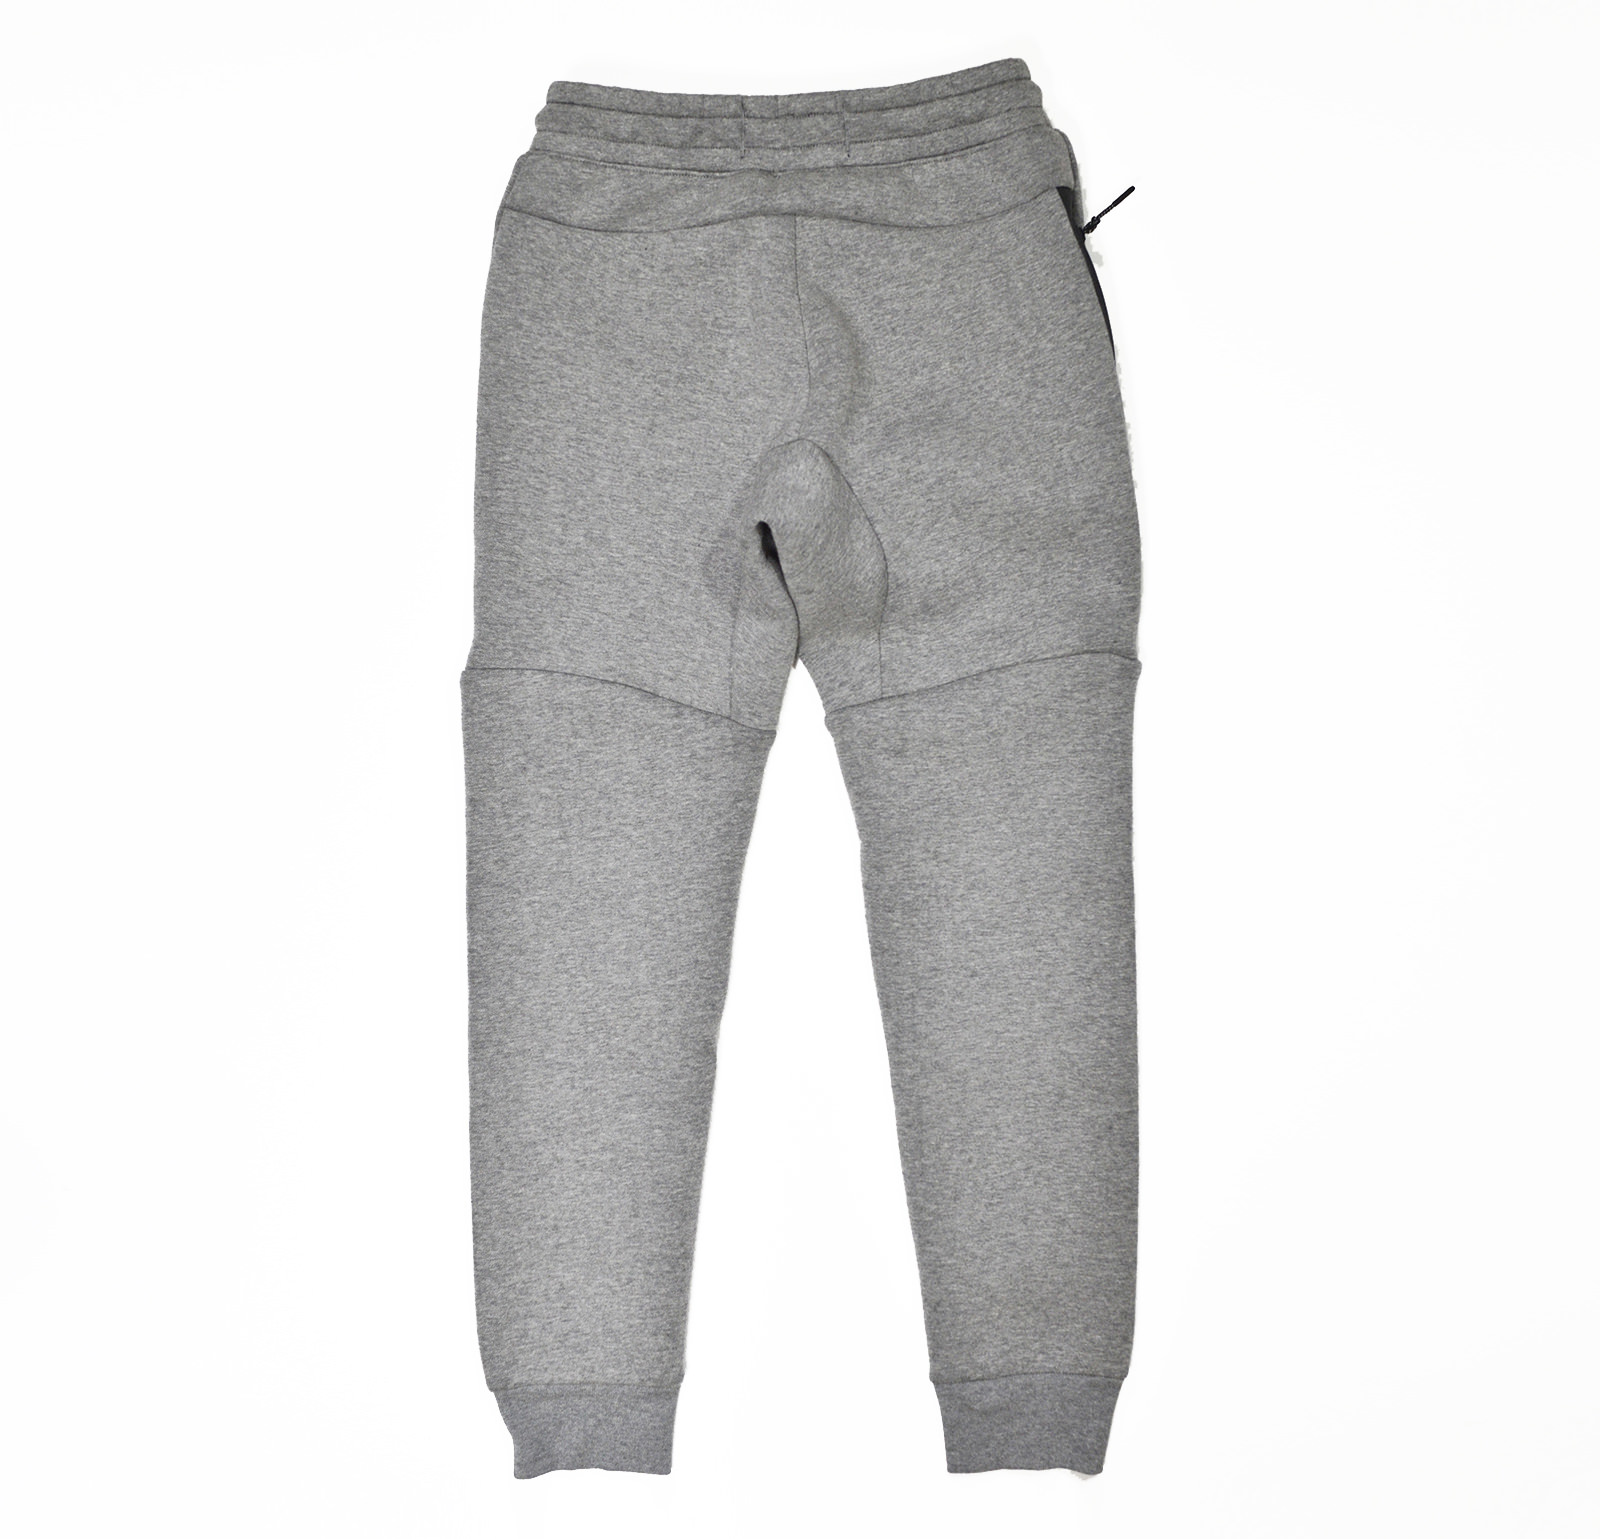 58201265b69ed76343ead30e_tech-fleece-3mm-08